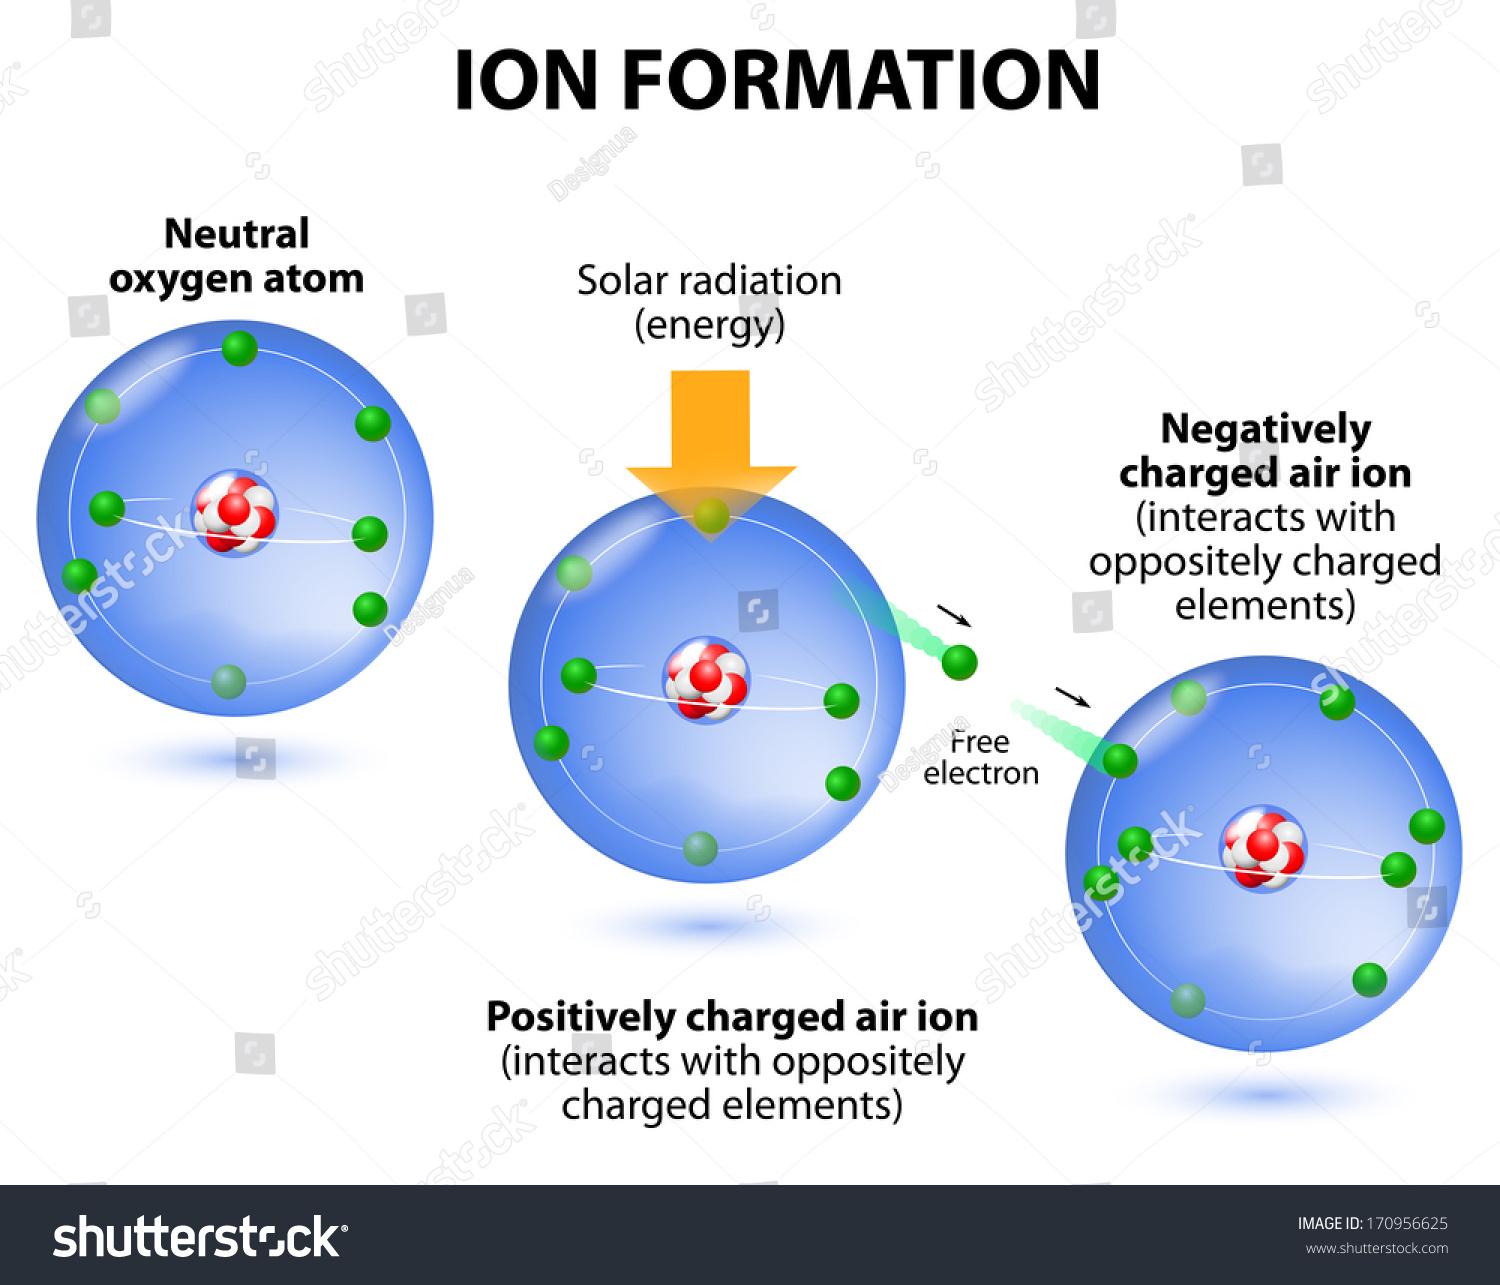 Shutterstock Oxygen Atom Diagram Wire Data Schema Structure Stock Photo Ionization Example Process Which Neutral Model